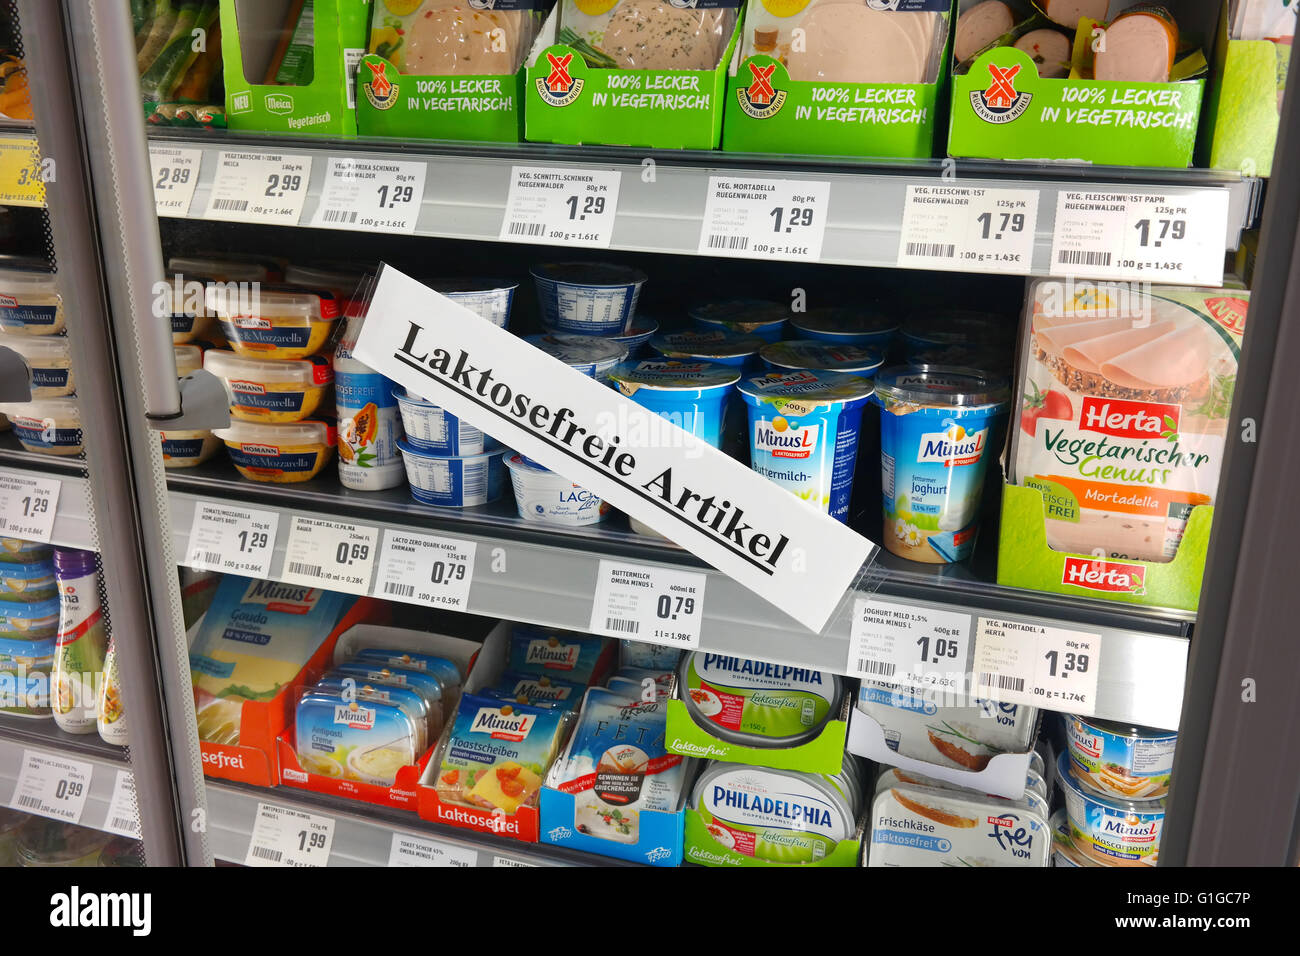 Label in German for Lactose free refrigerated fresh products in a supermarket. Stock Photo